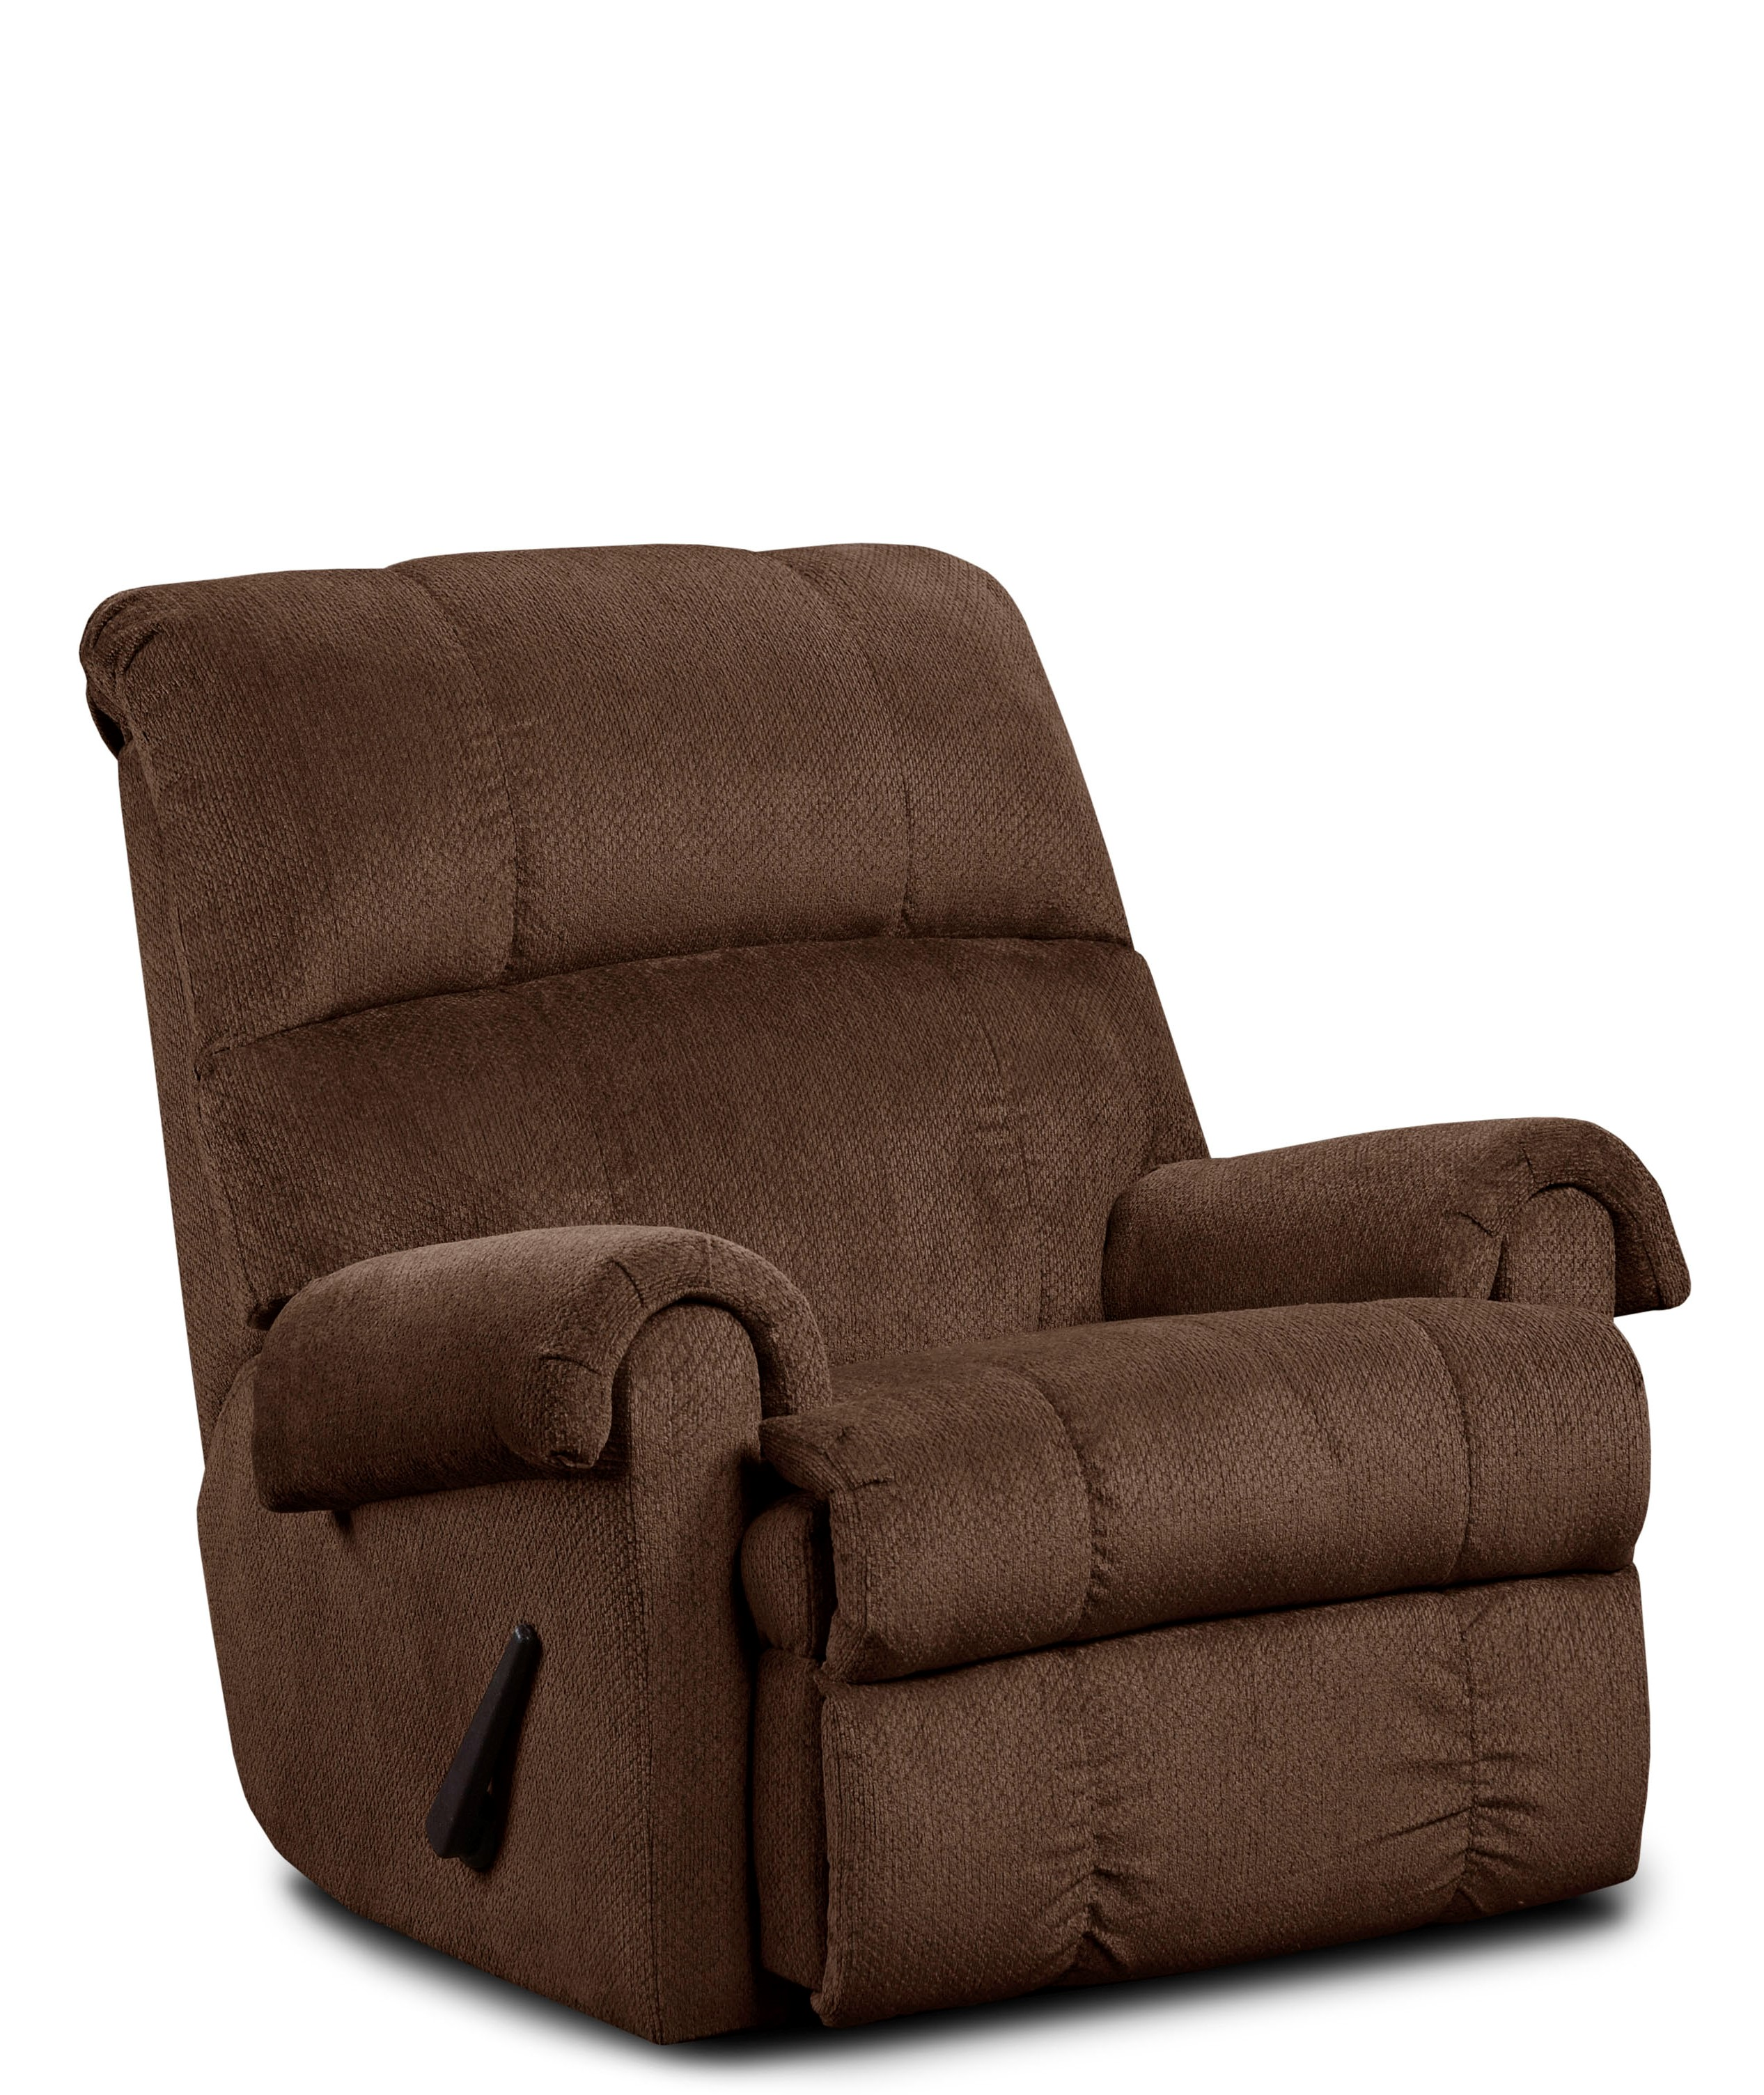 Washington Furniture Kelly Chocolate Recliner